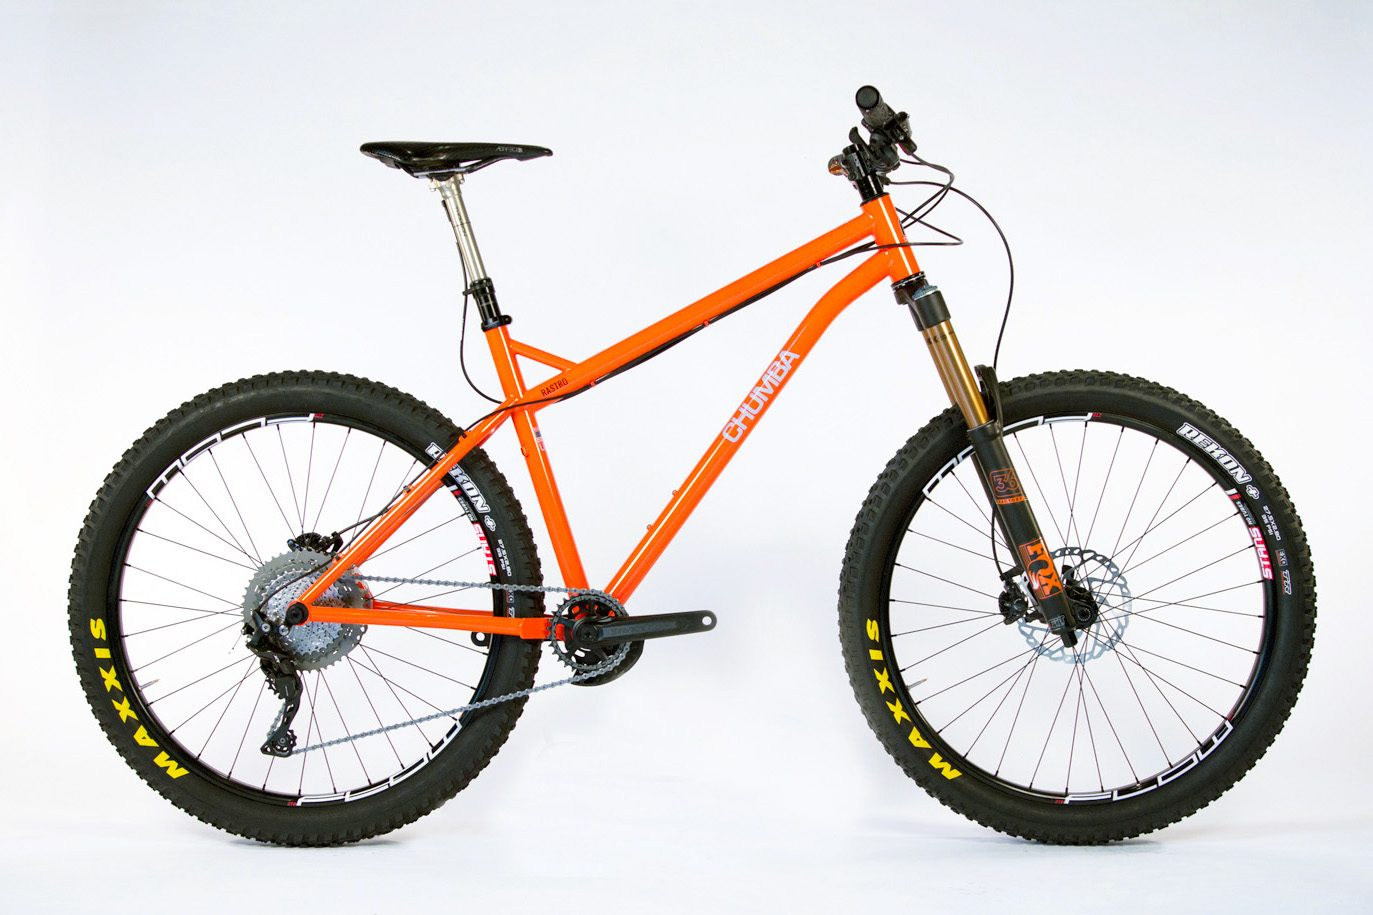 Chumba\'s Made in Texas Rastro Long Travel 27.5+ Hardtail | The Radavist